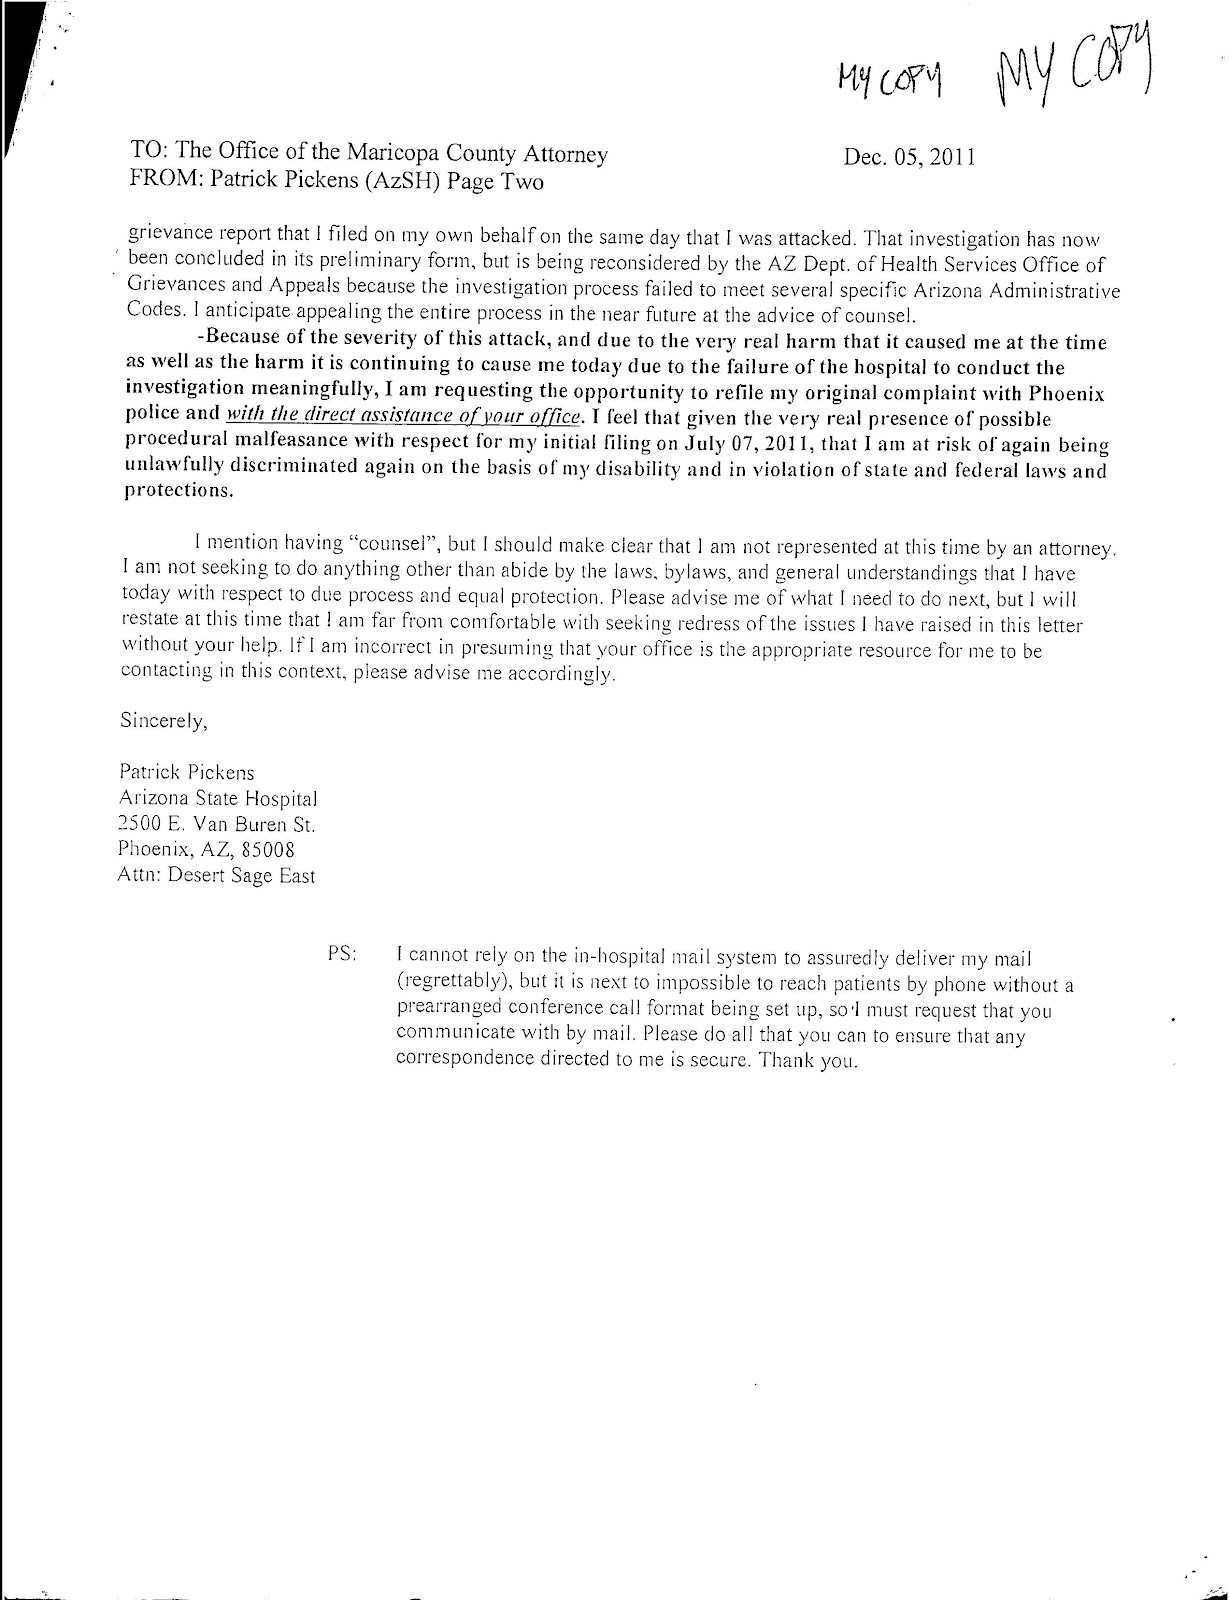 The arizona state hospital and patient abuse paoloreedgmail i was a bit dismayed when about two weeks after i had sent the above letter to the county attorneys office i received the letter shown below from the spiritdancerdesigns Choice Image